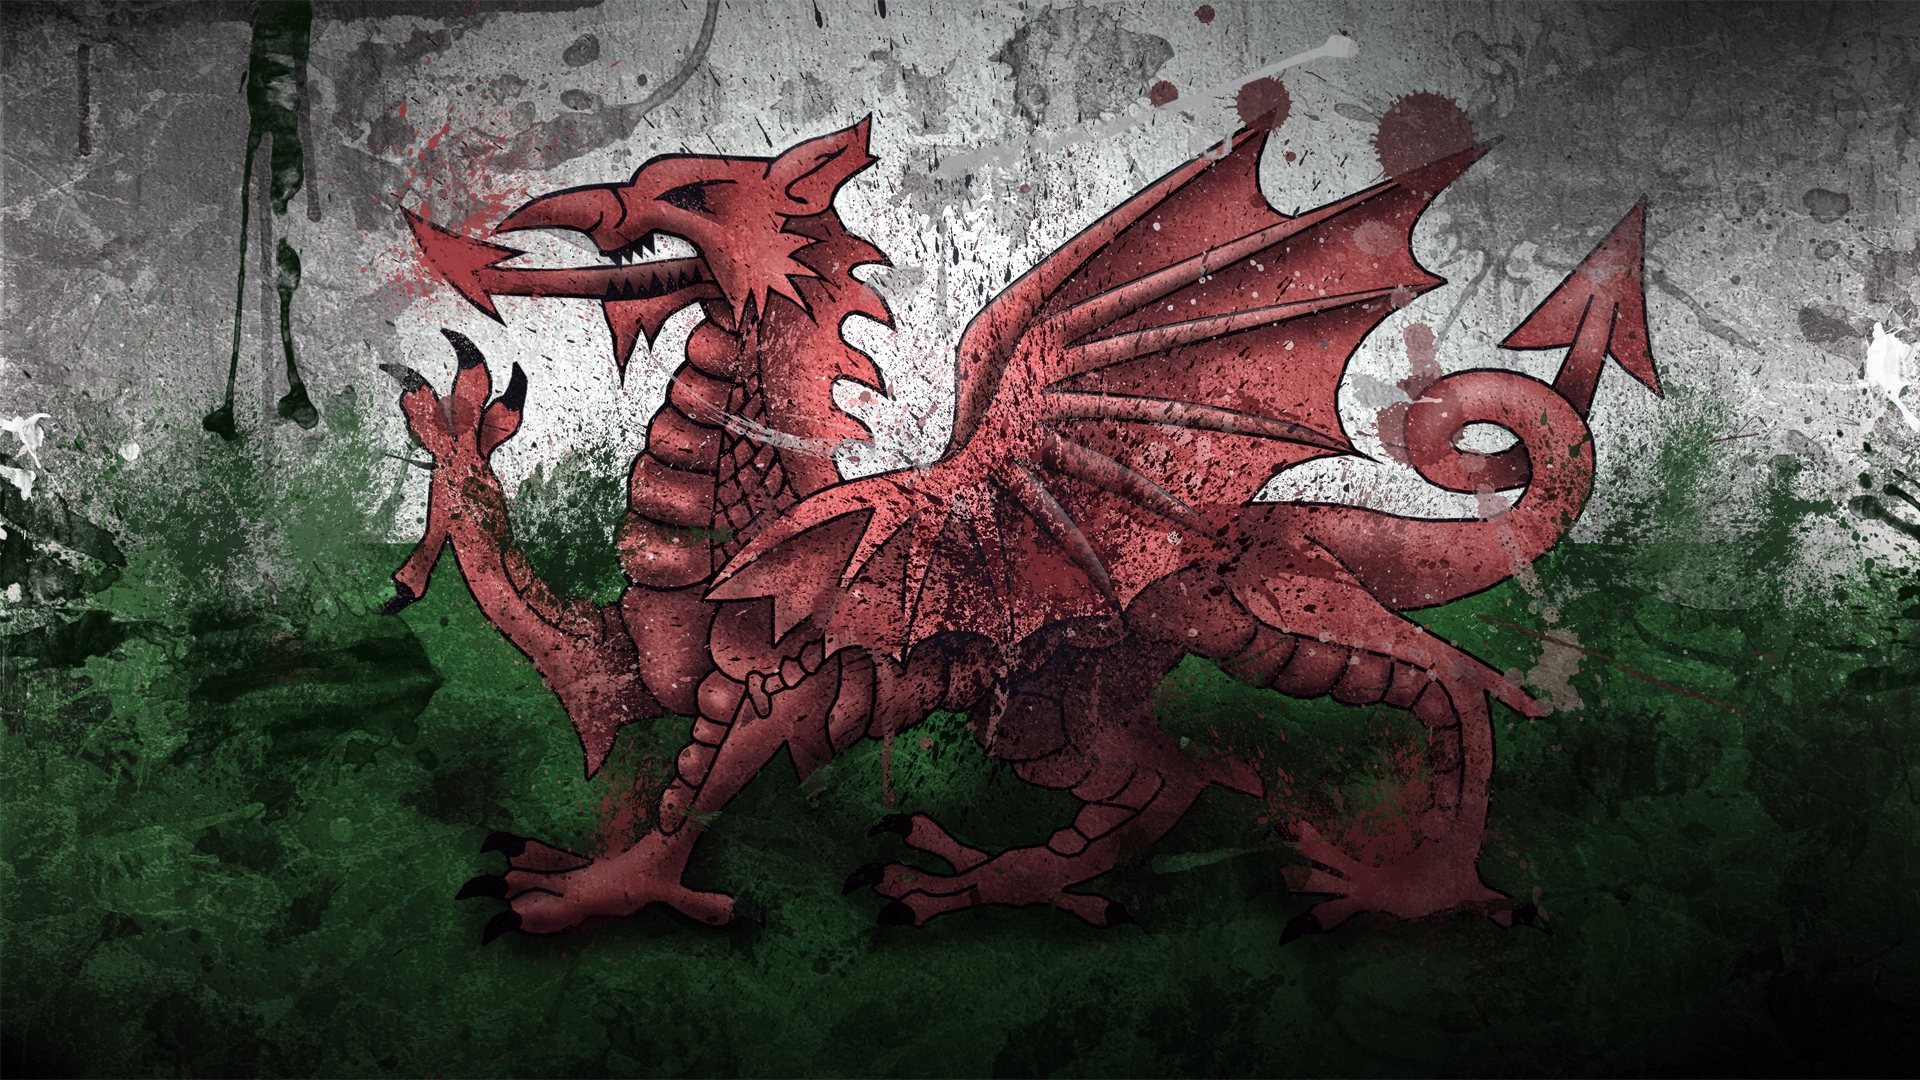 Download wallpaper 1920x1080 wales dragon symbol flag paints 1920x1080